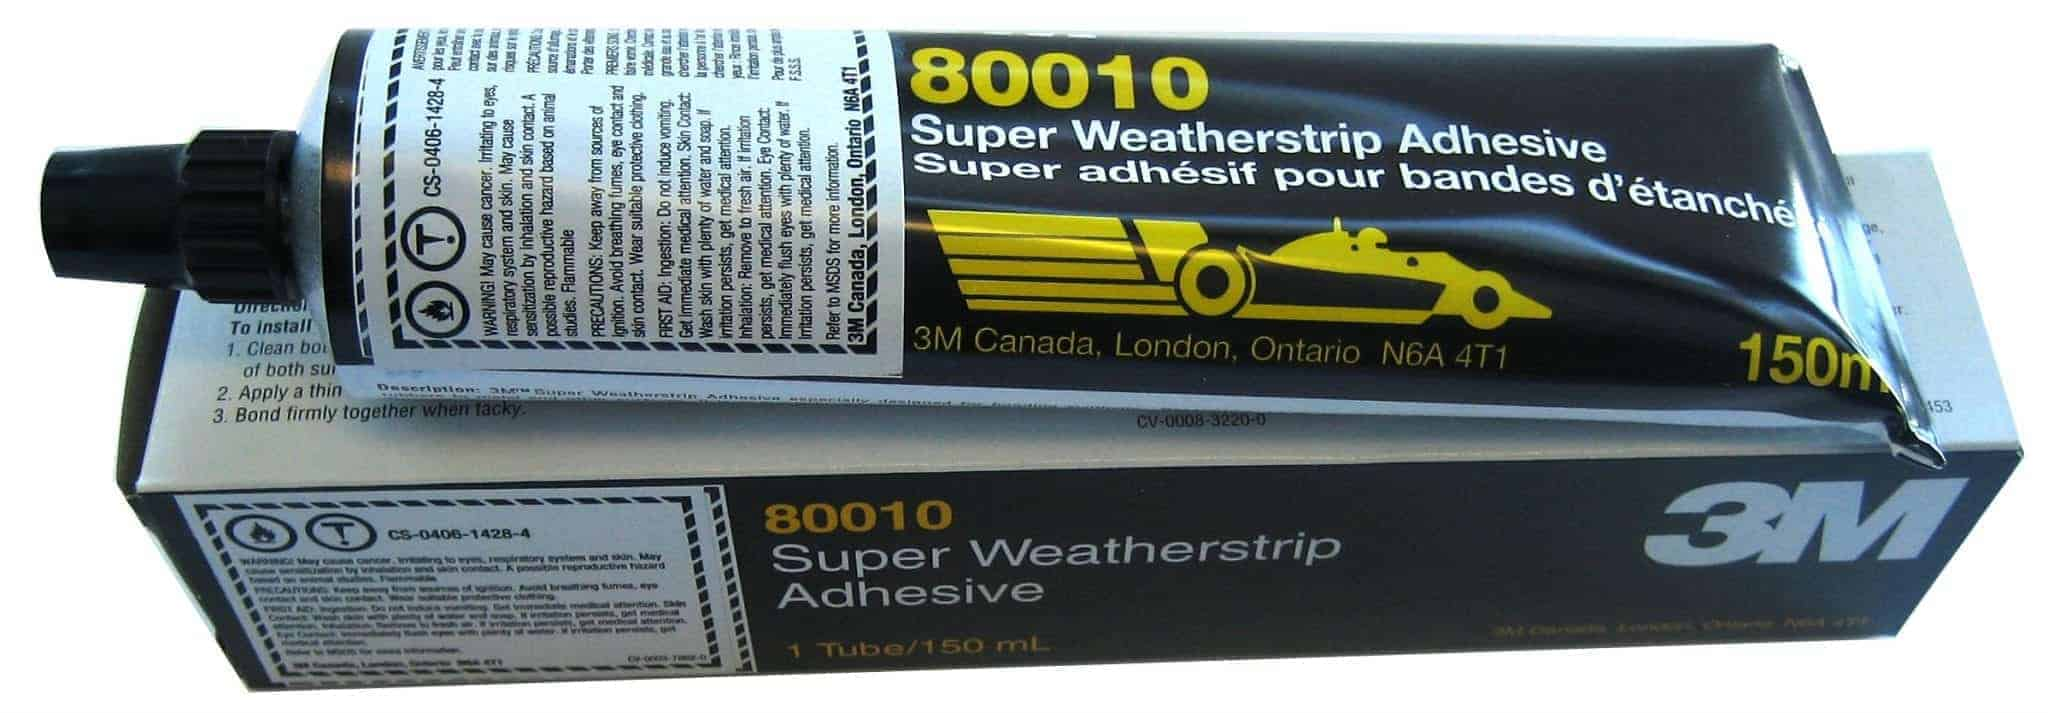 3M SUPER WEATHERSTRIP ADHESIVE YELLOW SKU # 80010